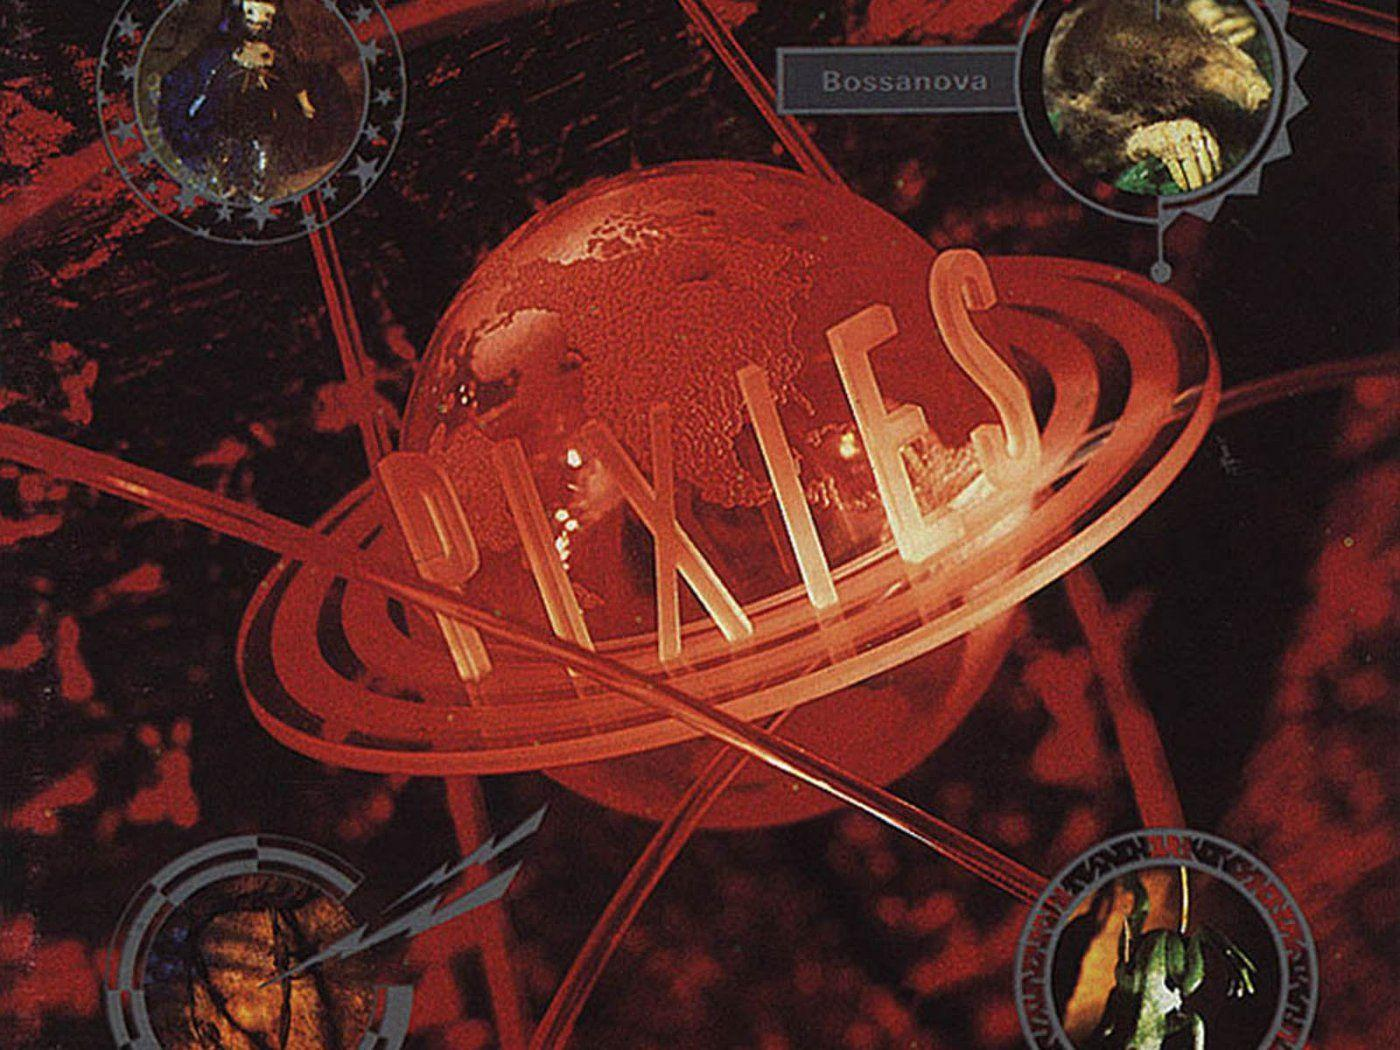 Best Pixies Wallpapers in High Quality, Pixies Backgrounds